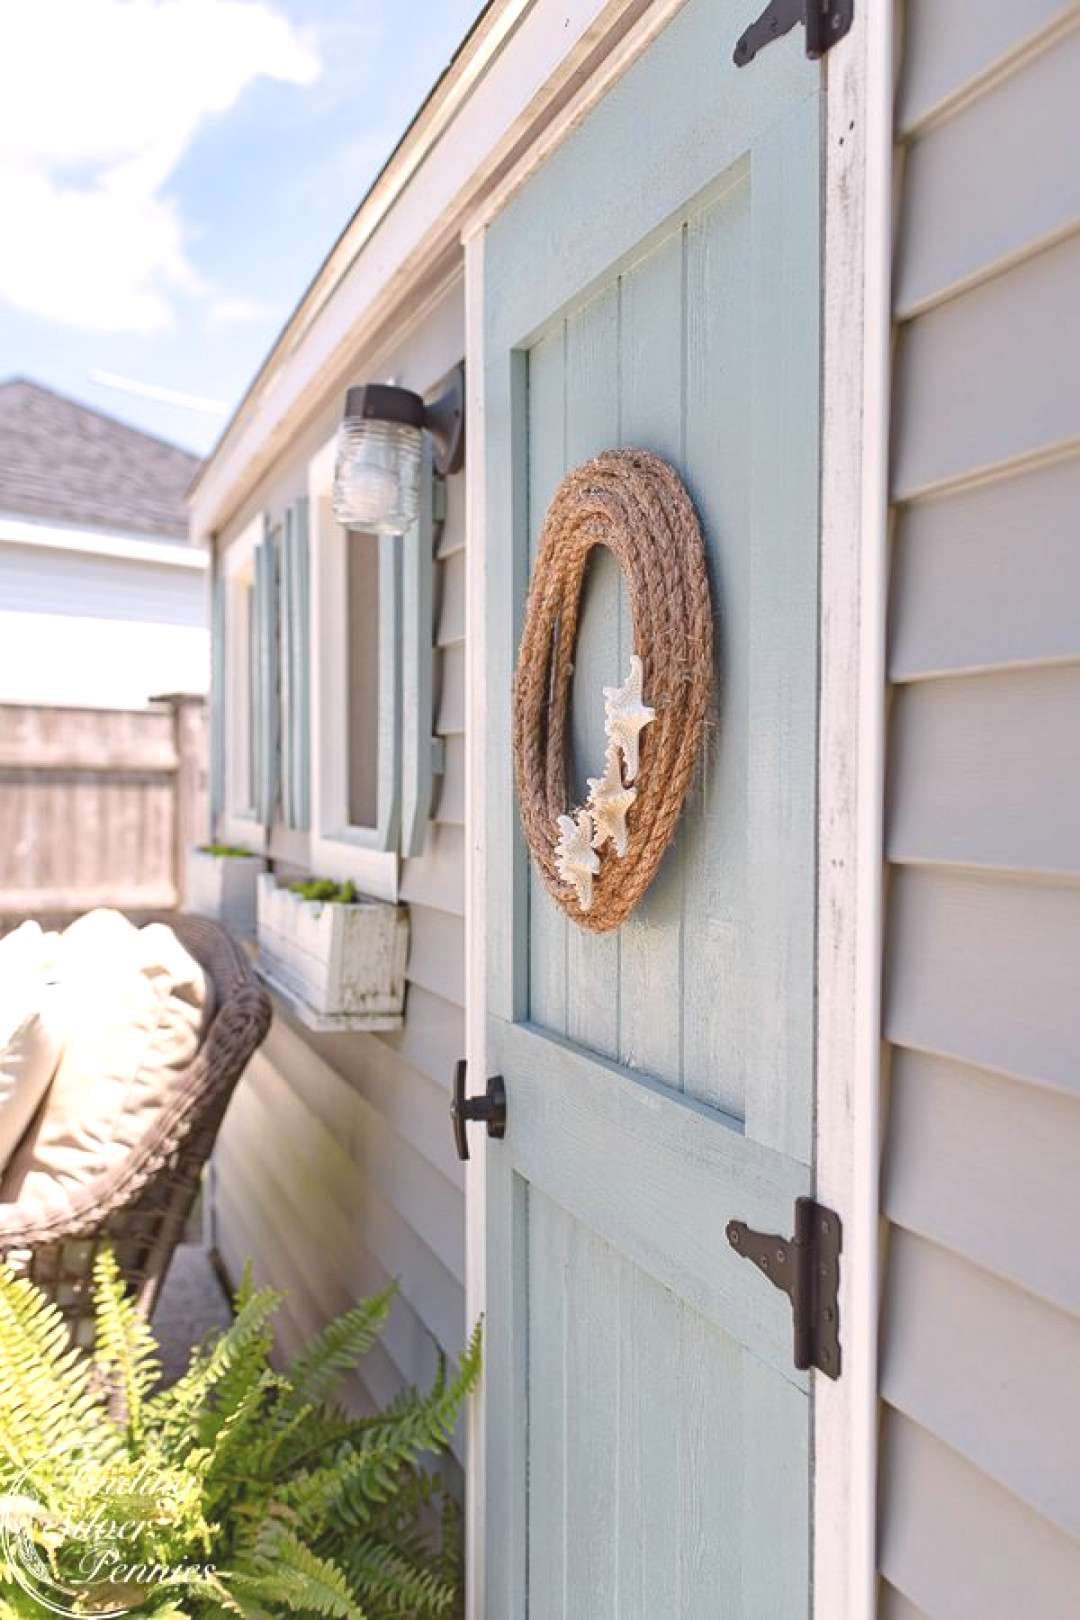 DIY Rope and Starfish Wreath - Finding Silver Pennies, ... DIY Rope and Starfish Wreath - Finding